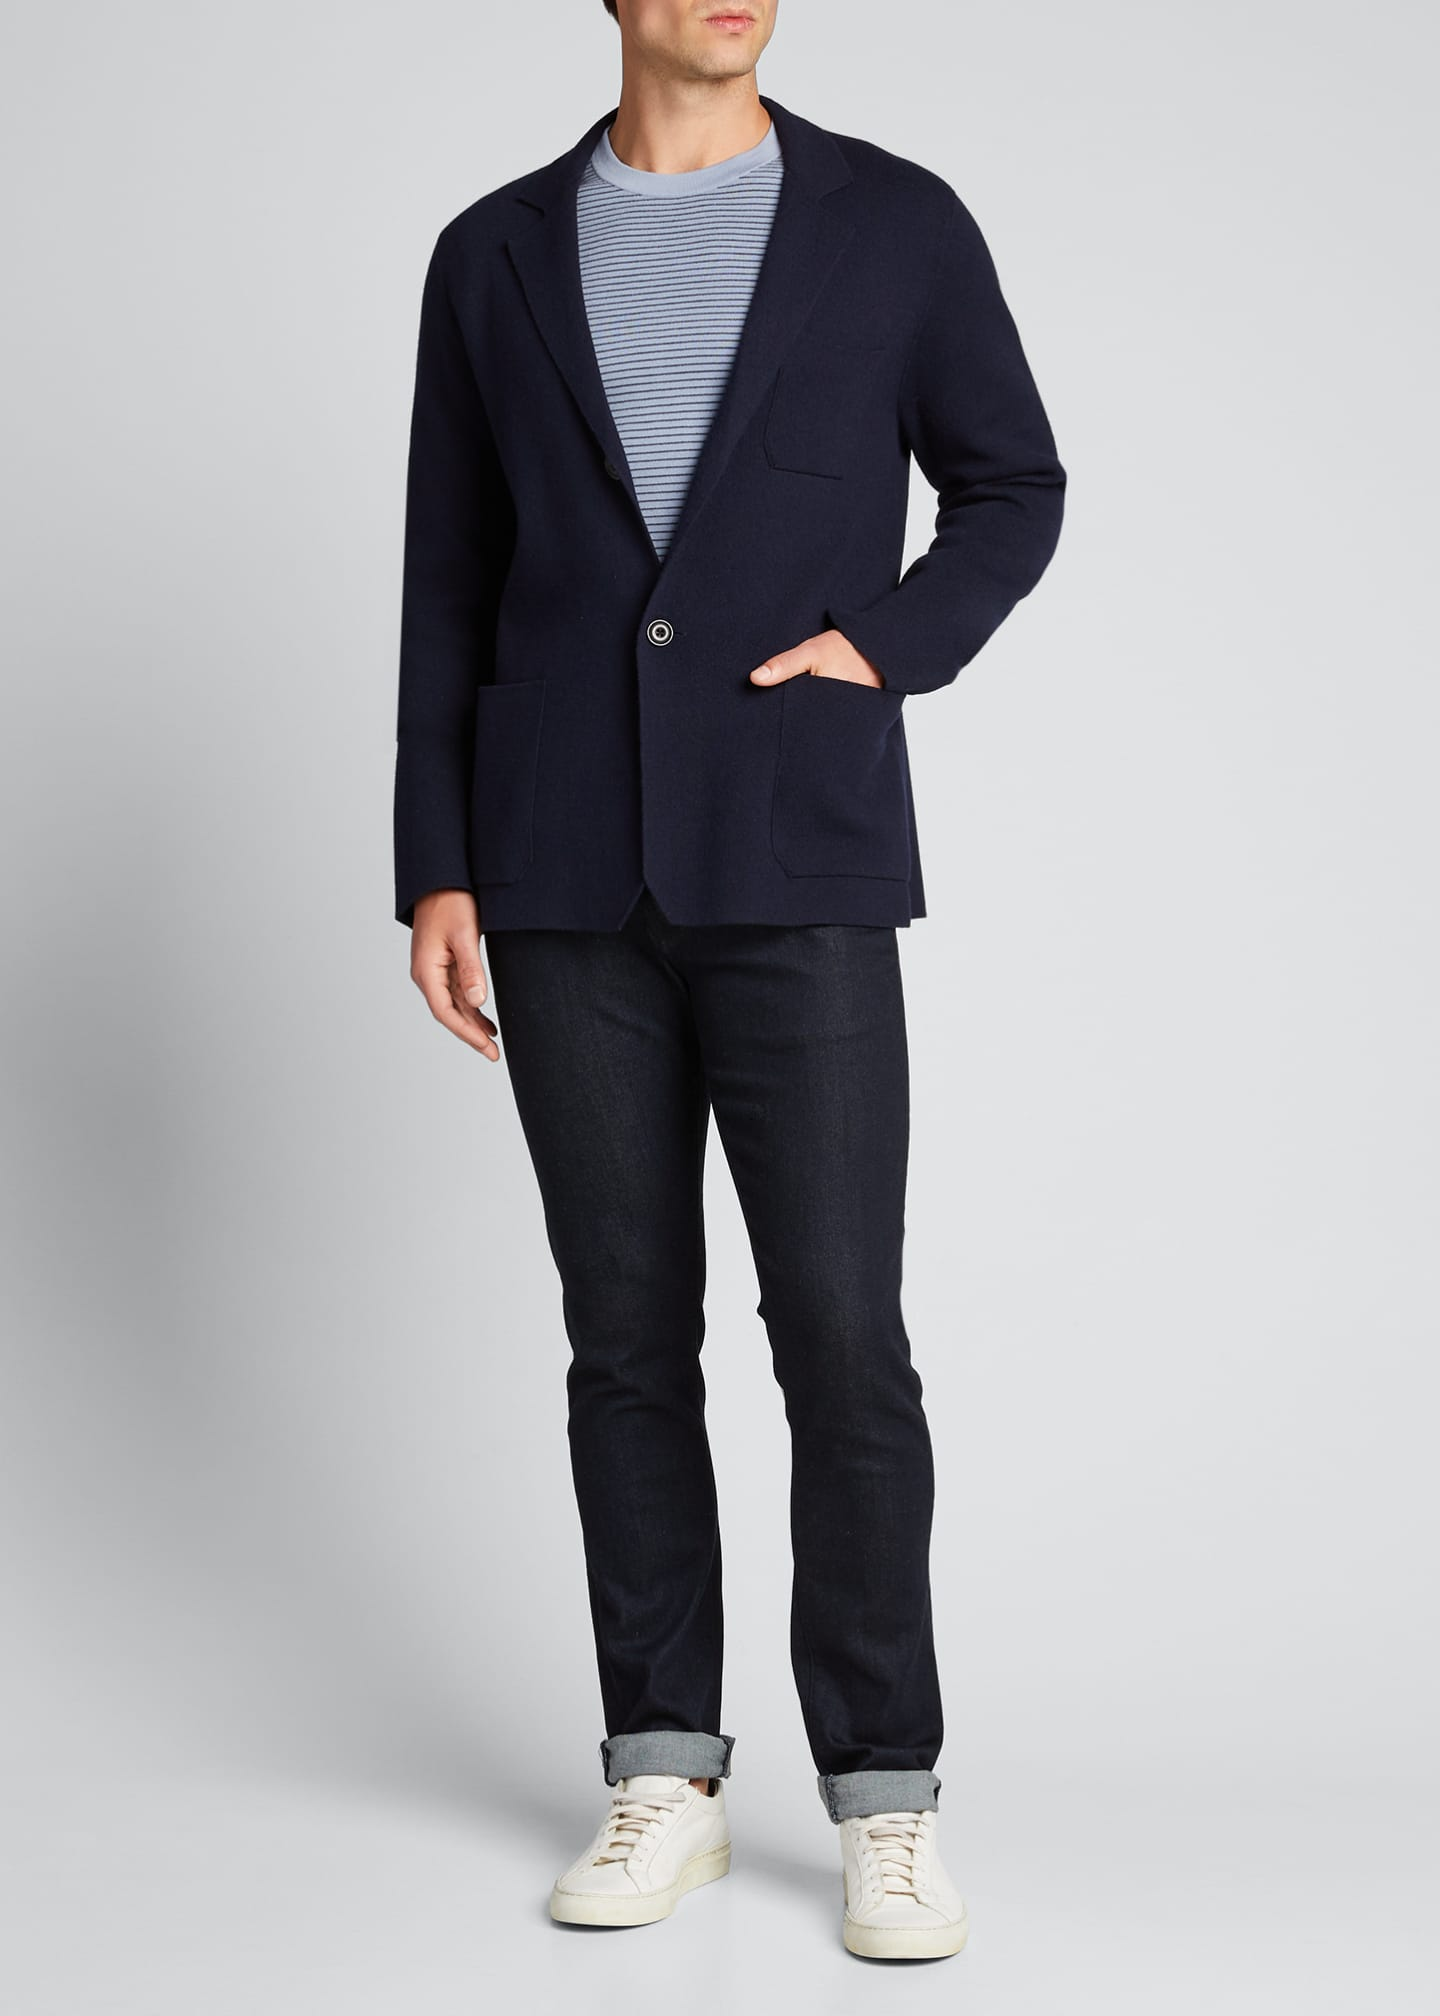 Vince Men's Solid Patch-Pocket Wool-Blend Jacket